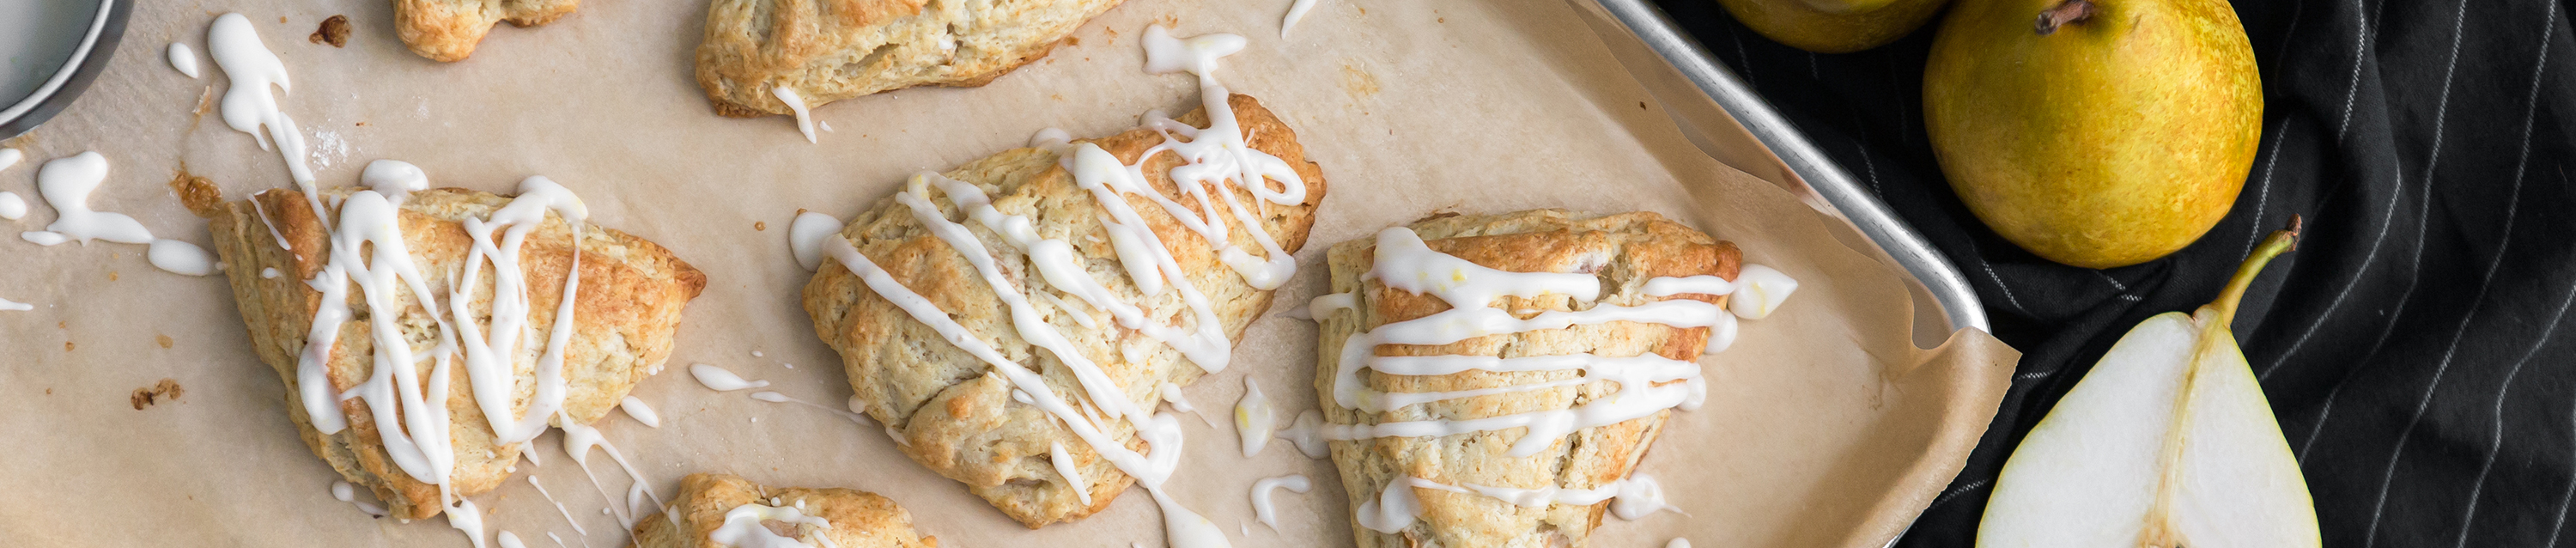 French Butter Pear Ginger Scones with Glaze